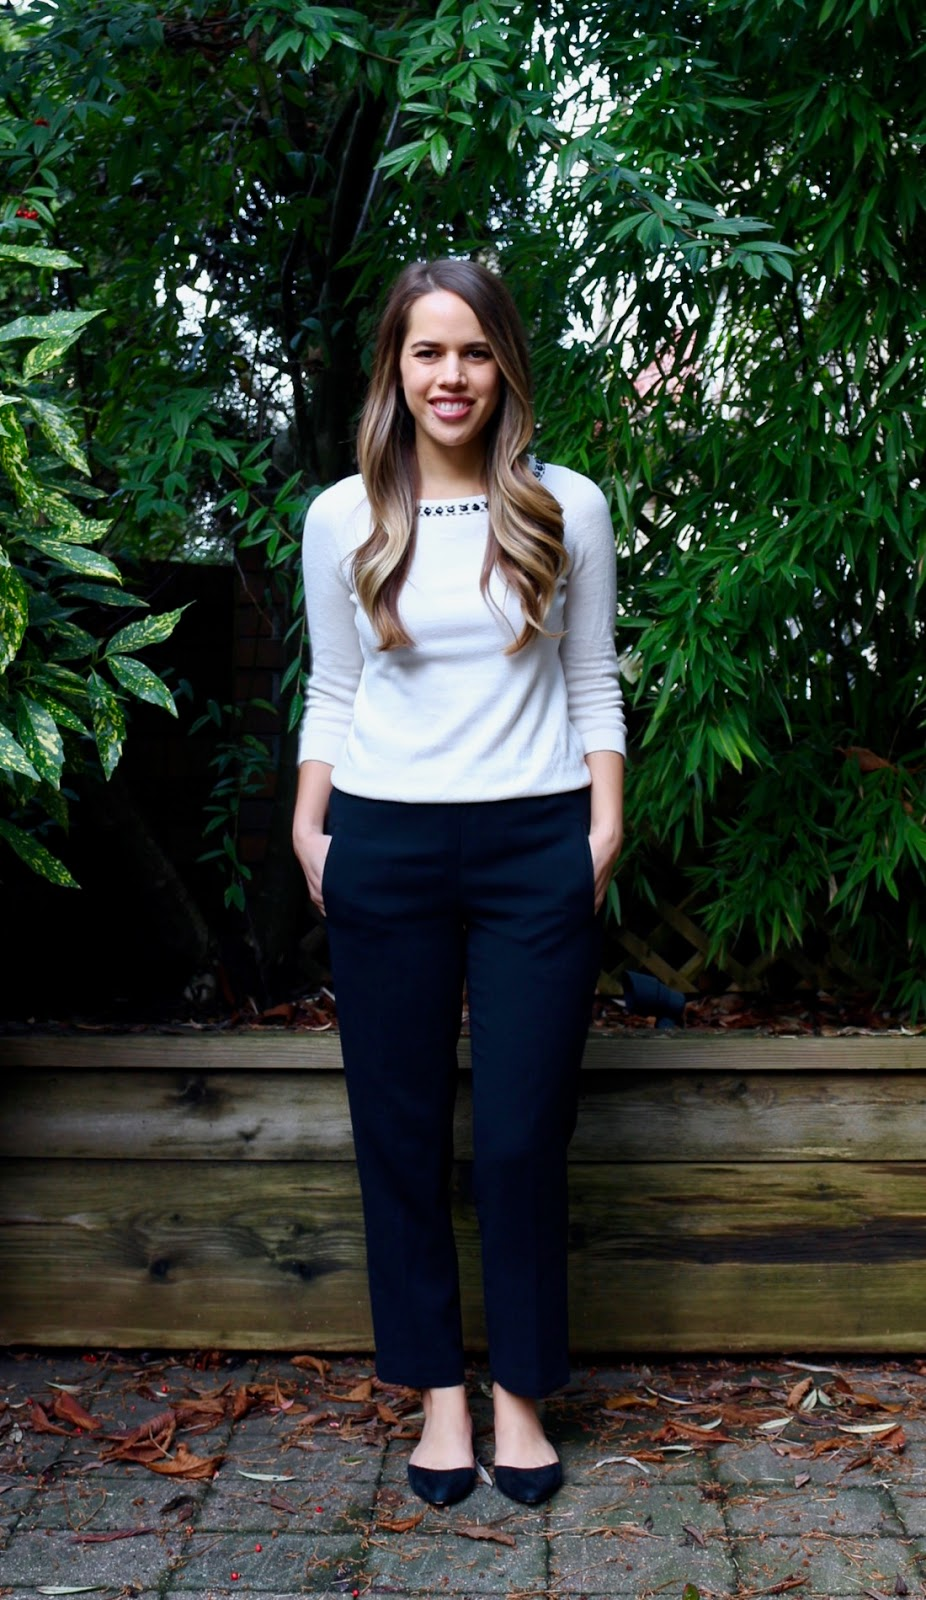 Jules in Flats - White and Black with Aritzia Darontal Pant (Business Casual Winter Workwear on a Budget)